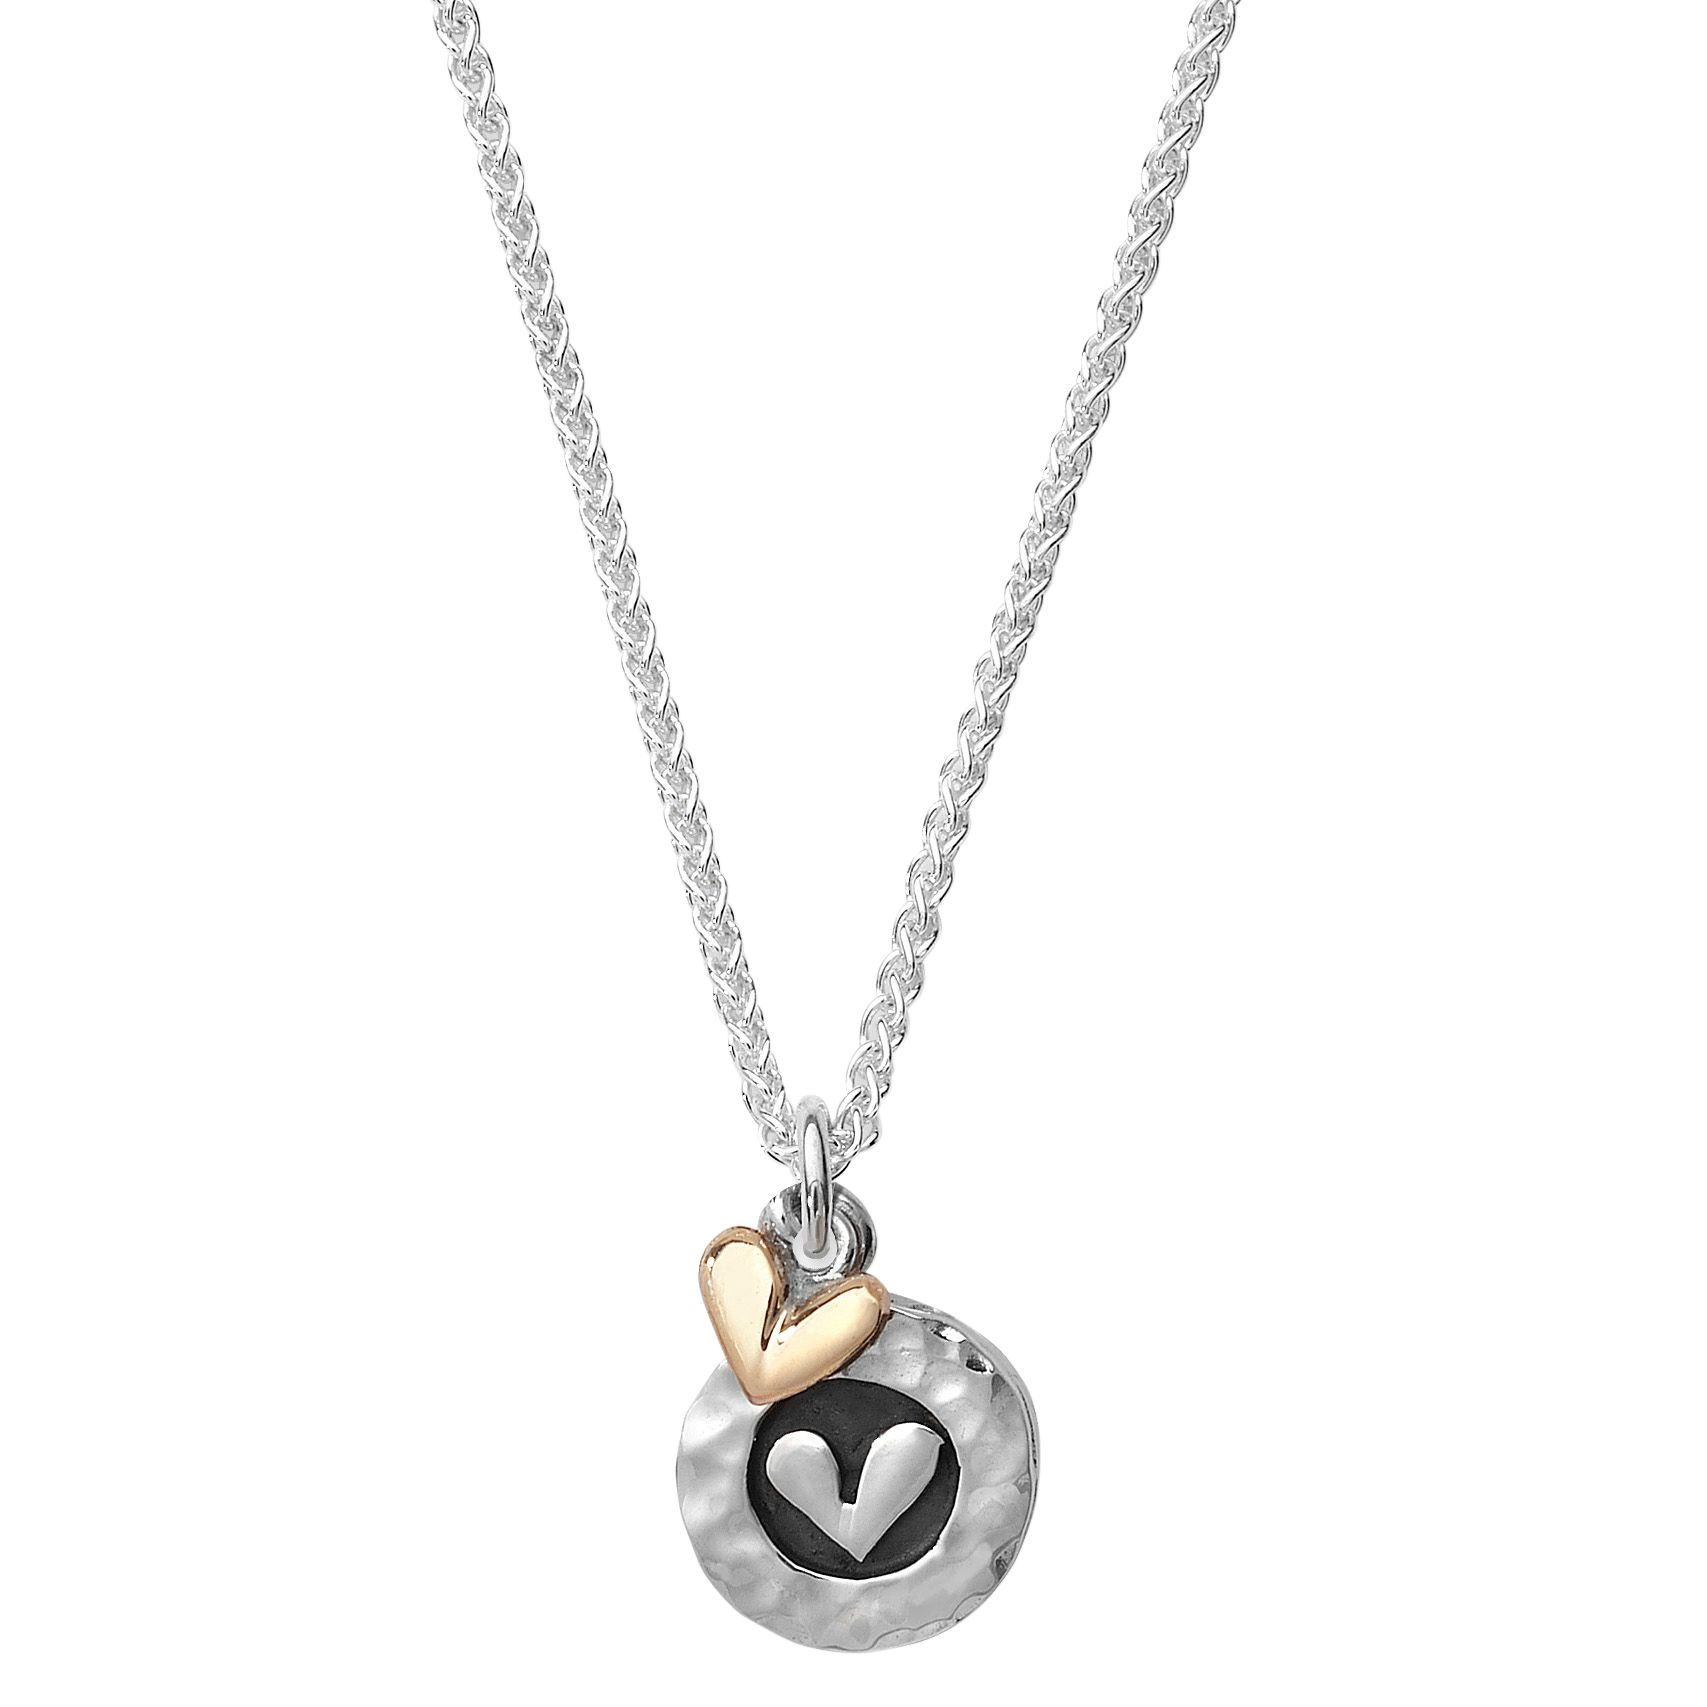 Linda Macdonald Silver Heart Disc with Gold Heart Pendant Necklace, Silver/Gold